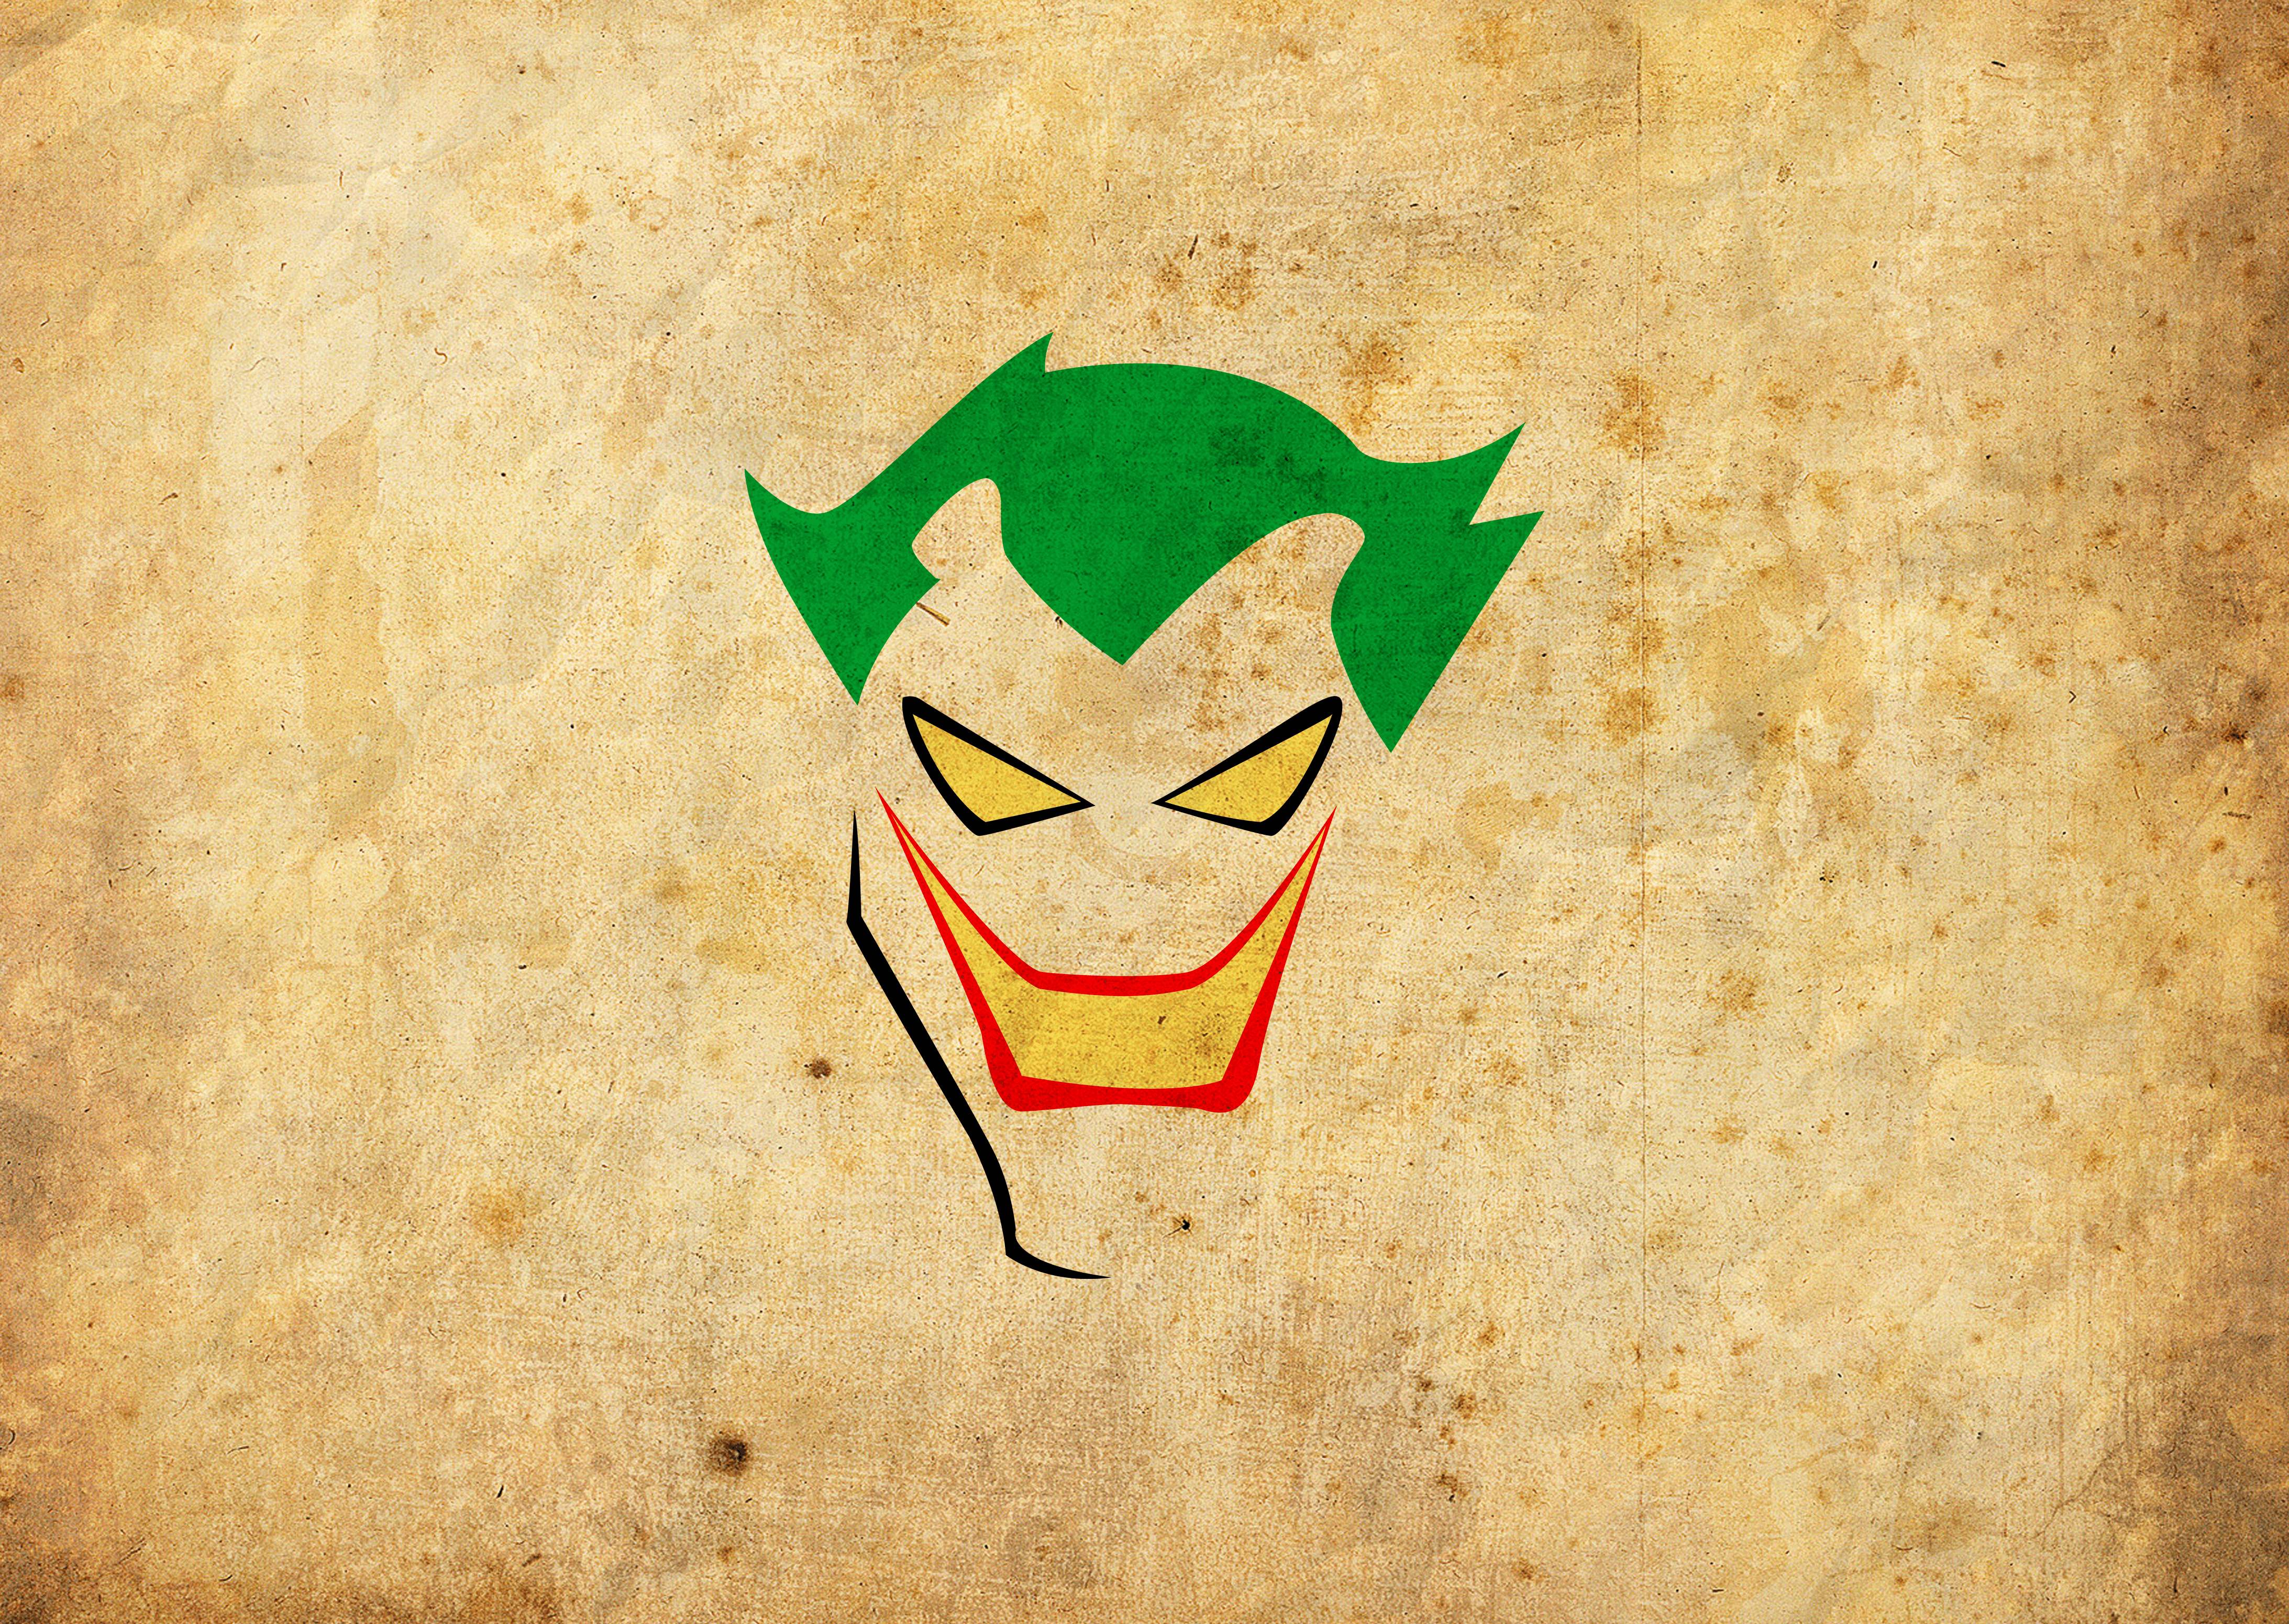 The Joker Minimalist Wallpaper by krysis08 on DeviantArt